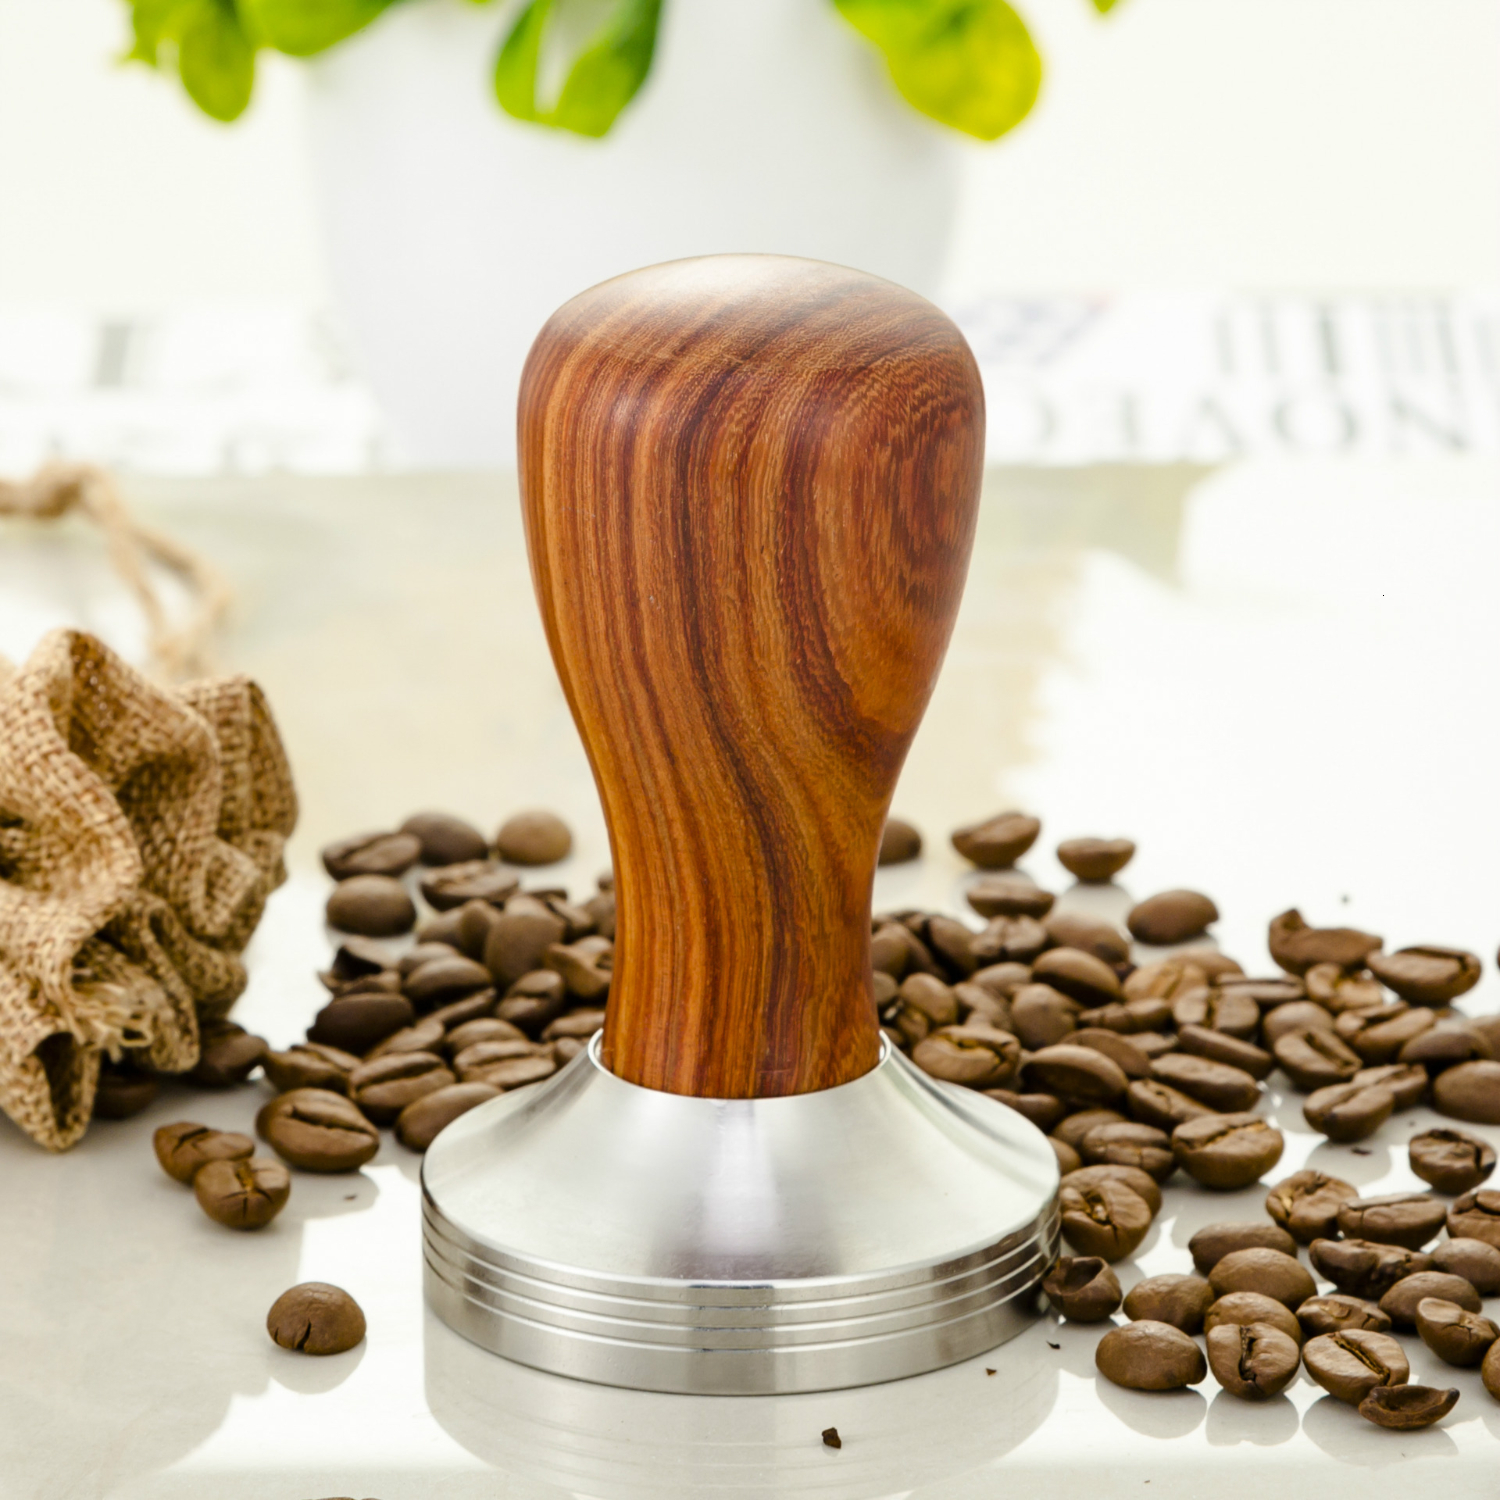 Food Grade 51mm Espresso Tamper Coffee Pull Cup Press Flat Base Barista Accessories